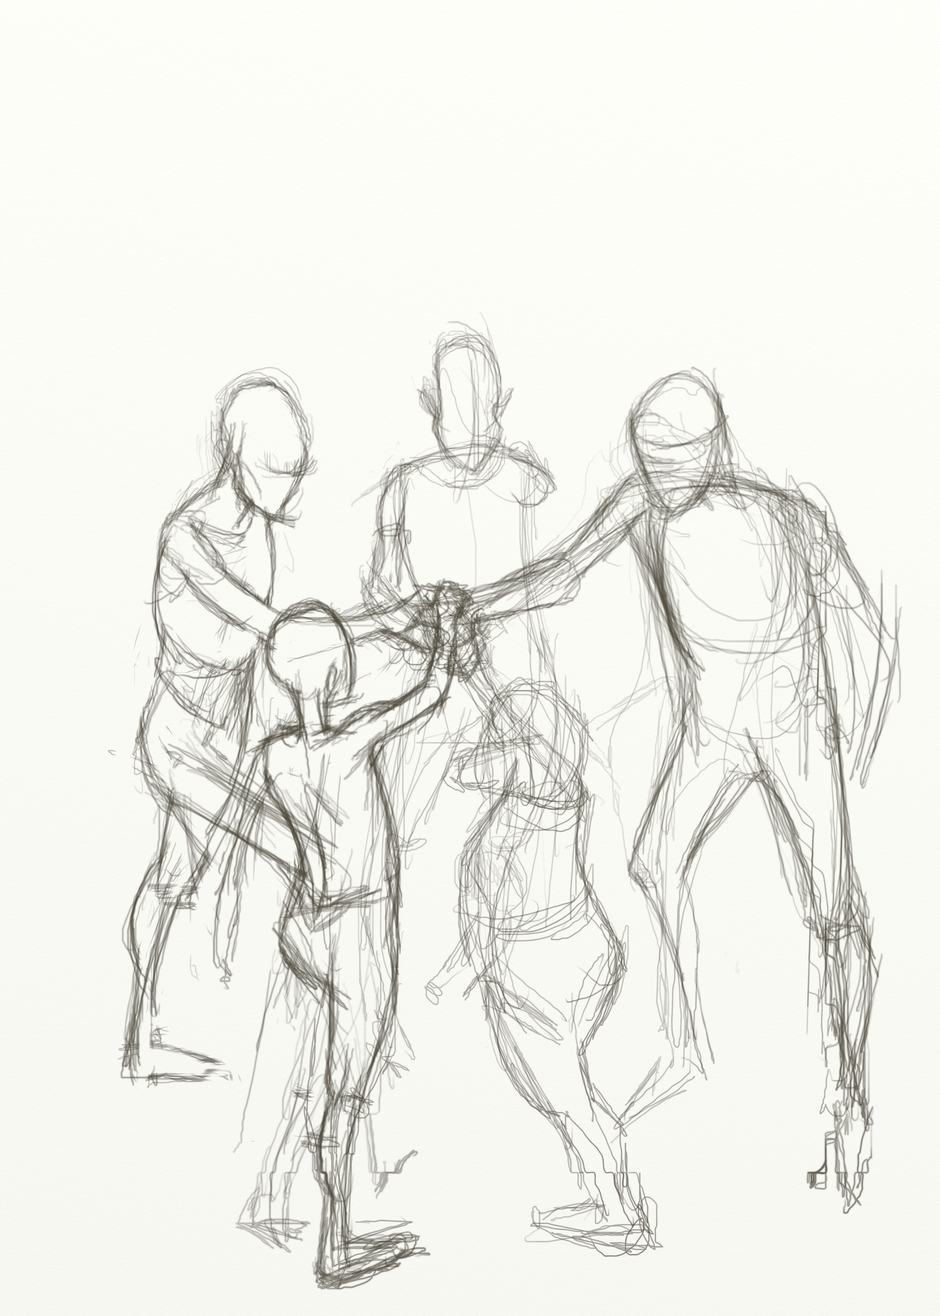 Pencil sketch of five figures standing in a circle with one hand in the middle.